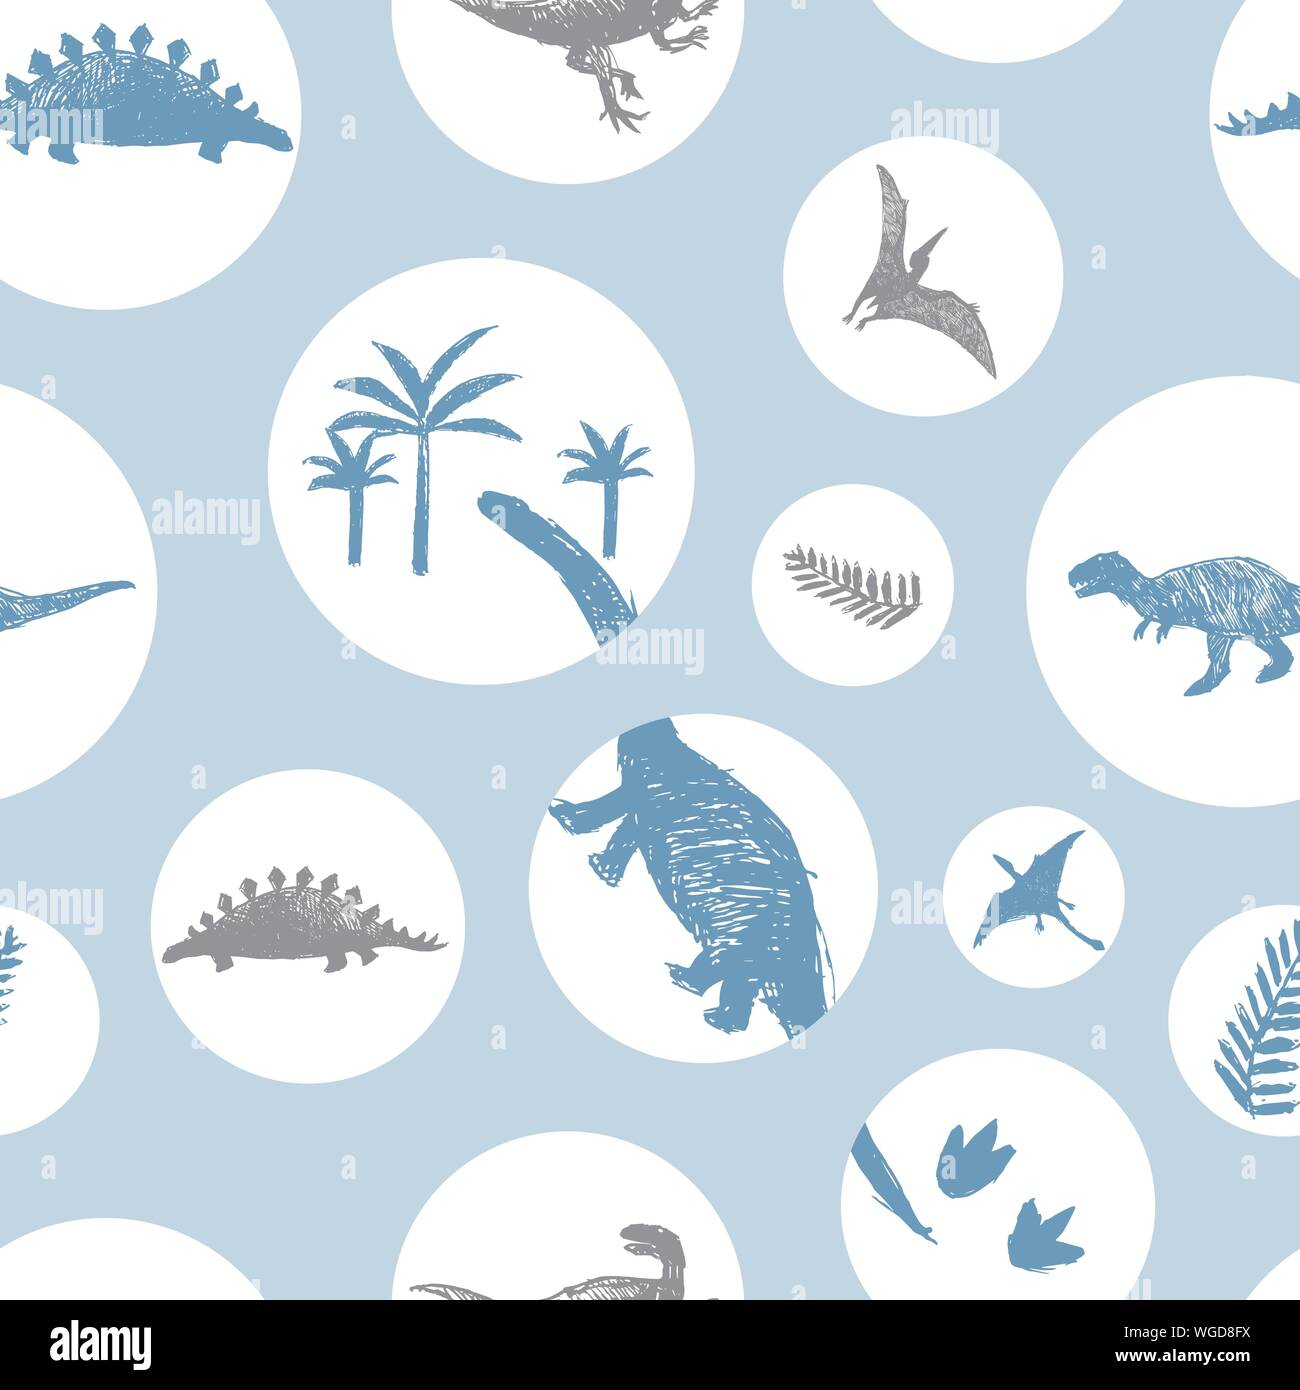 Vector light blue circles dinosaur sketch repeat pattern. Perfect for textile, giftwrap and wallpaper. Stock Vector